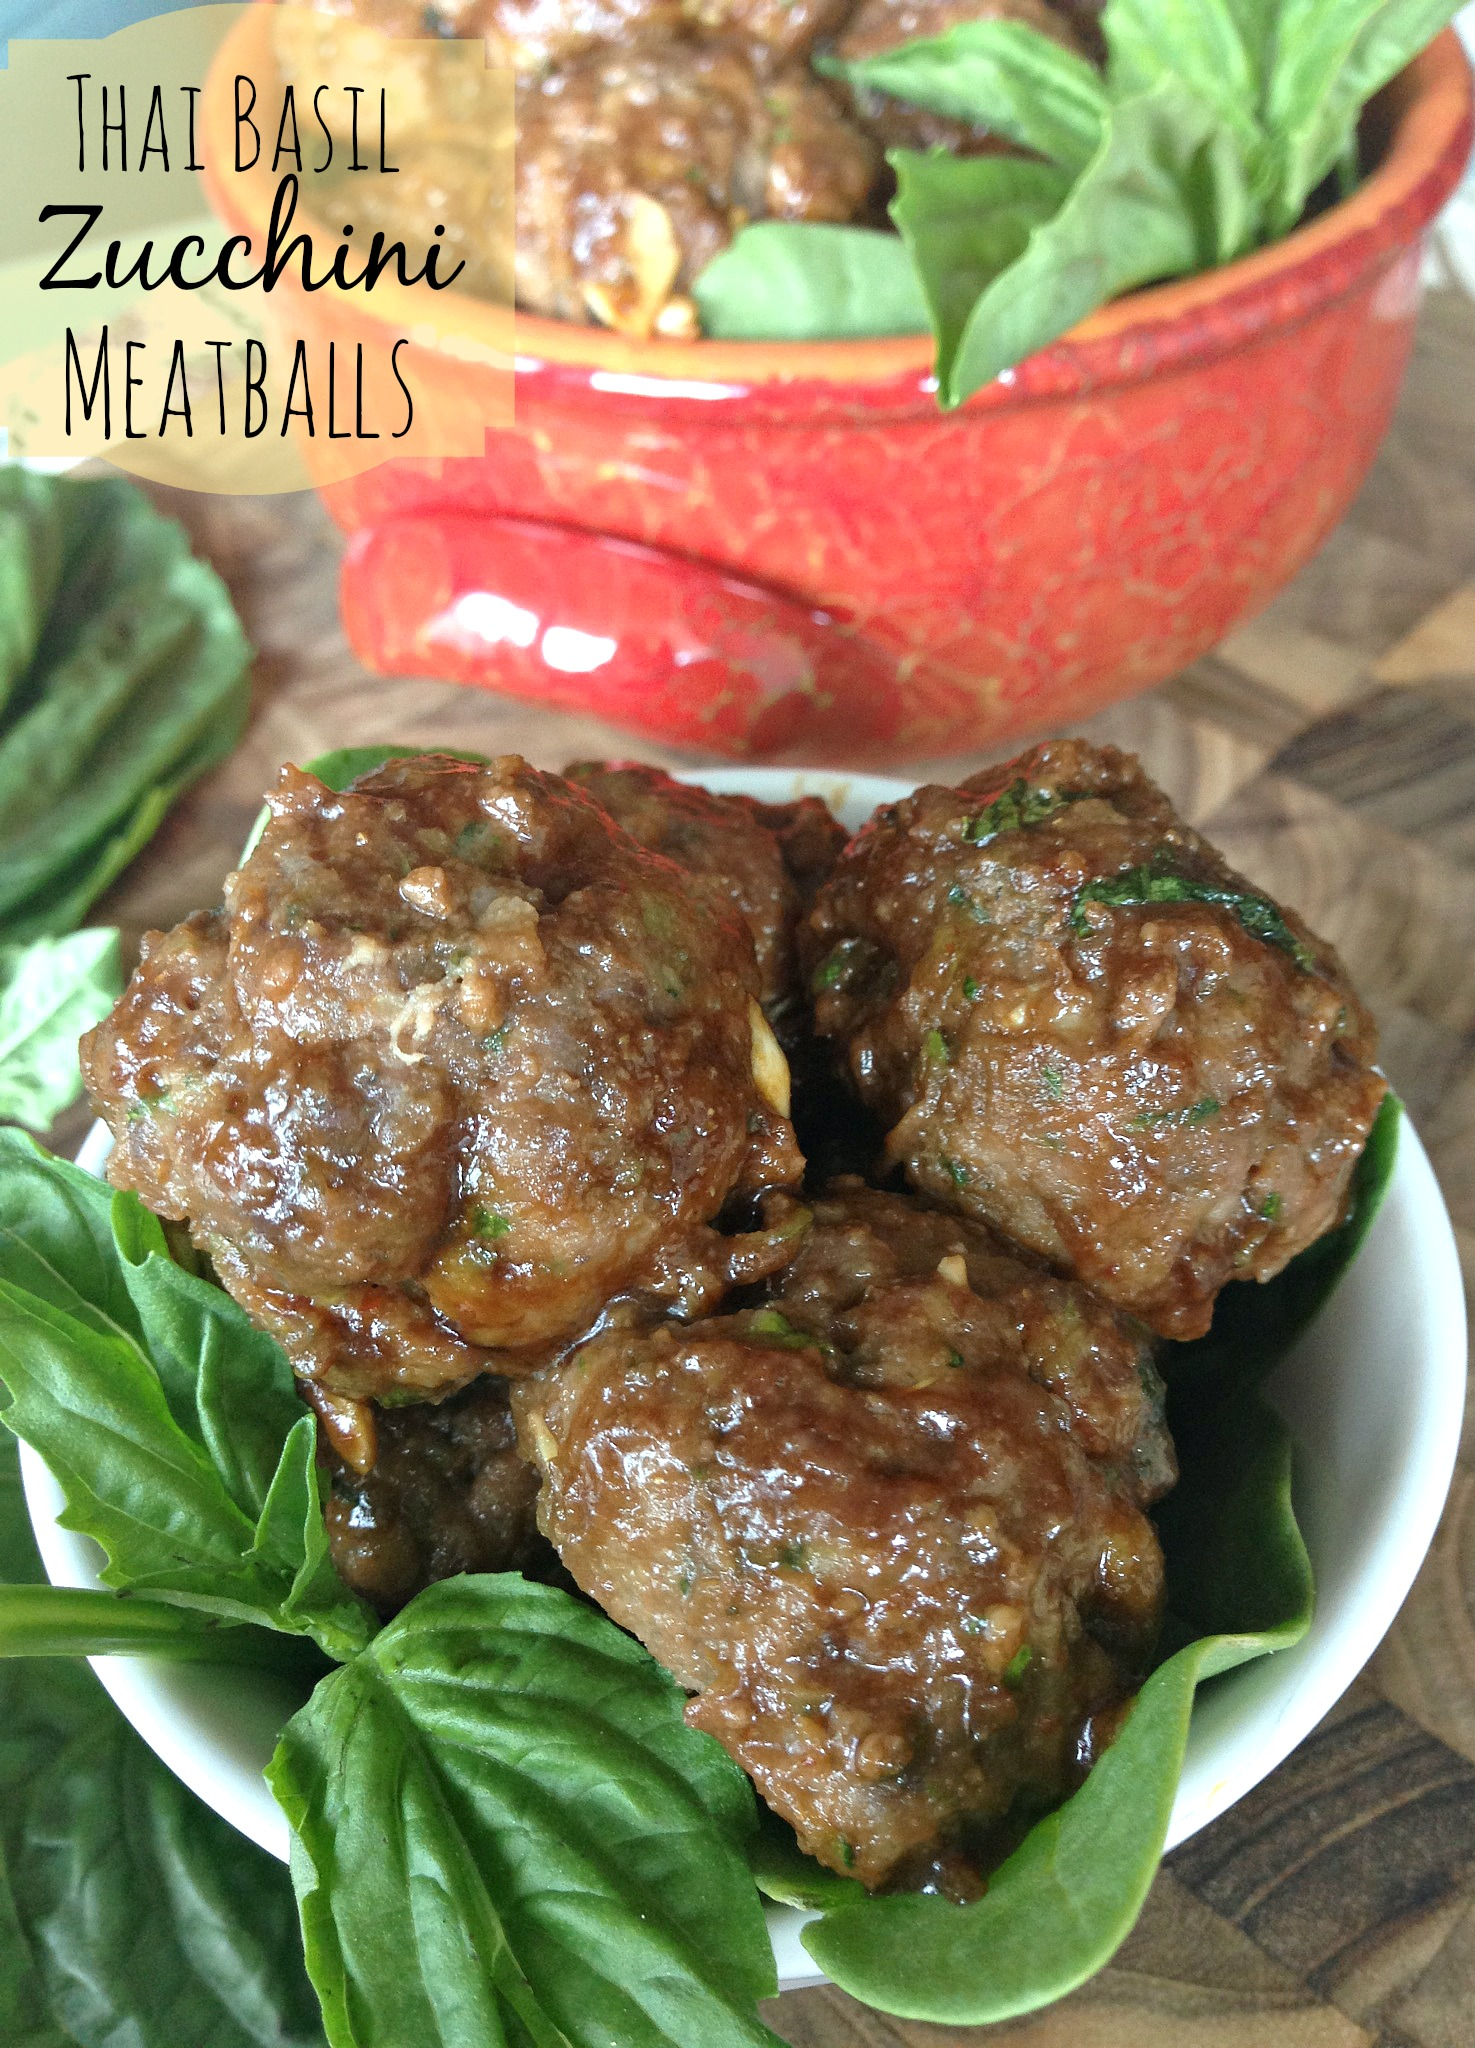 Bite-sized meatballs made with lean ground beef and shredded zucchini ...